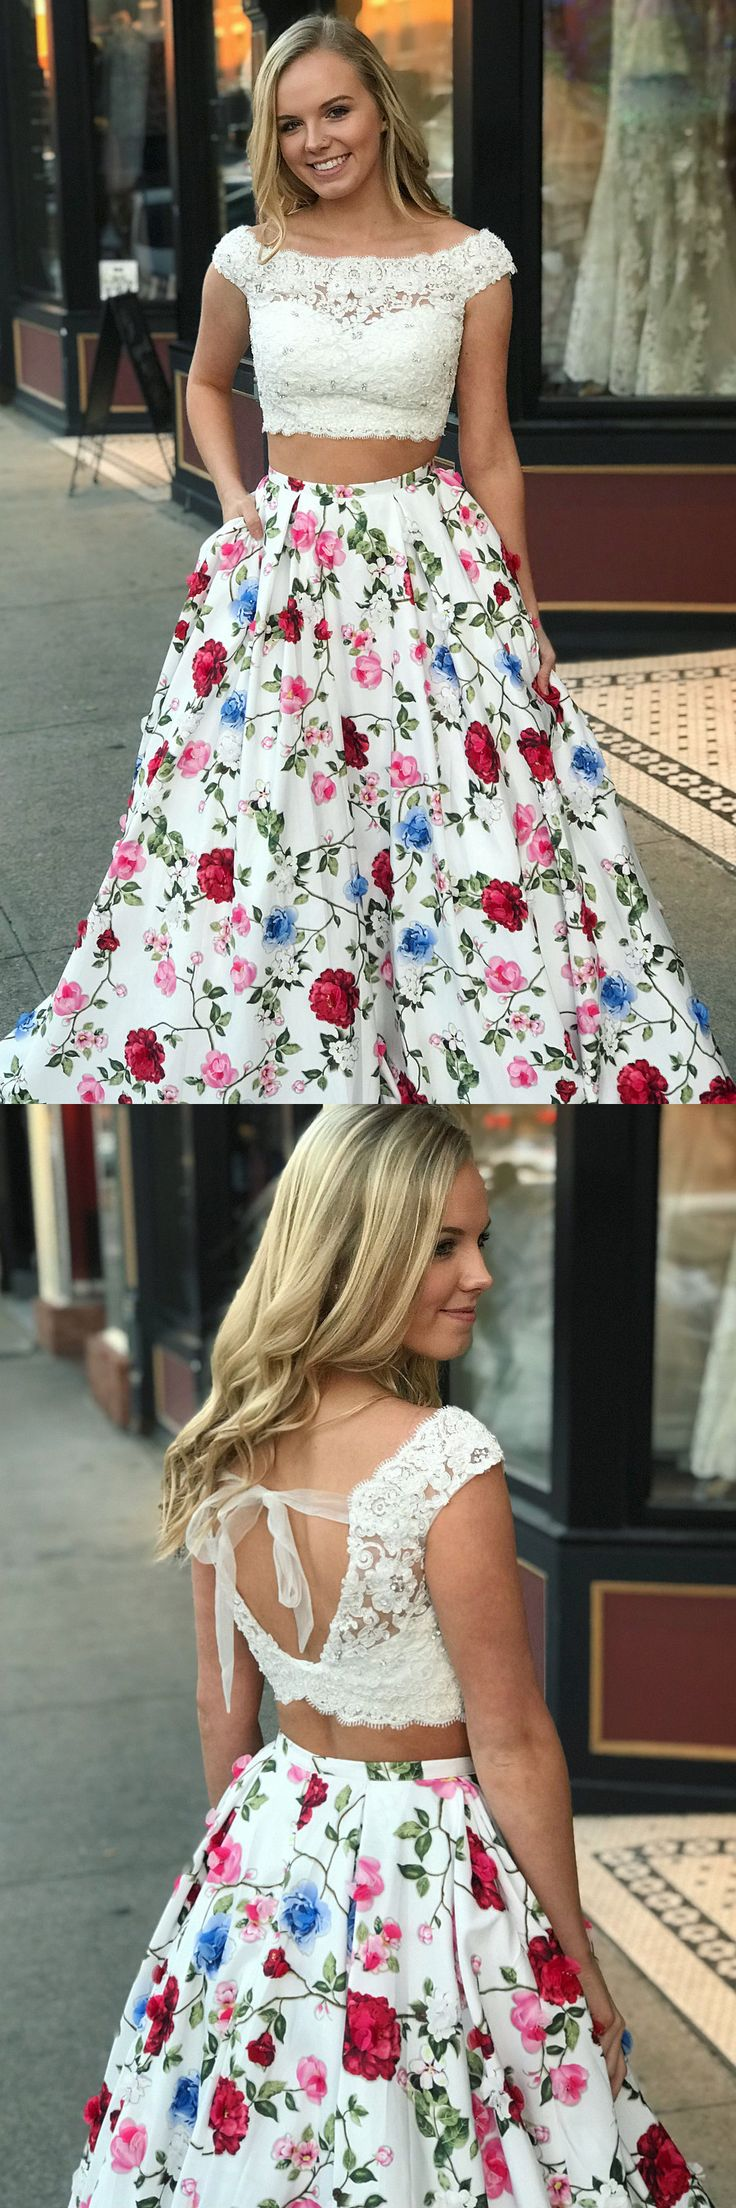 2018 two piece long prom dress, white lace and floral long prom dress, spring prom dress, party dress